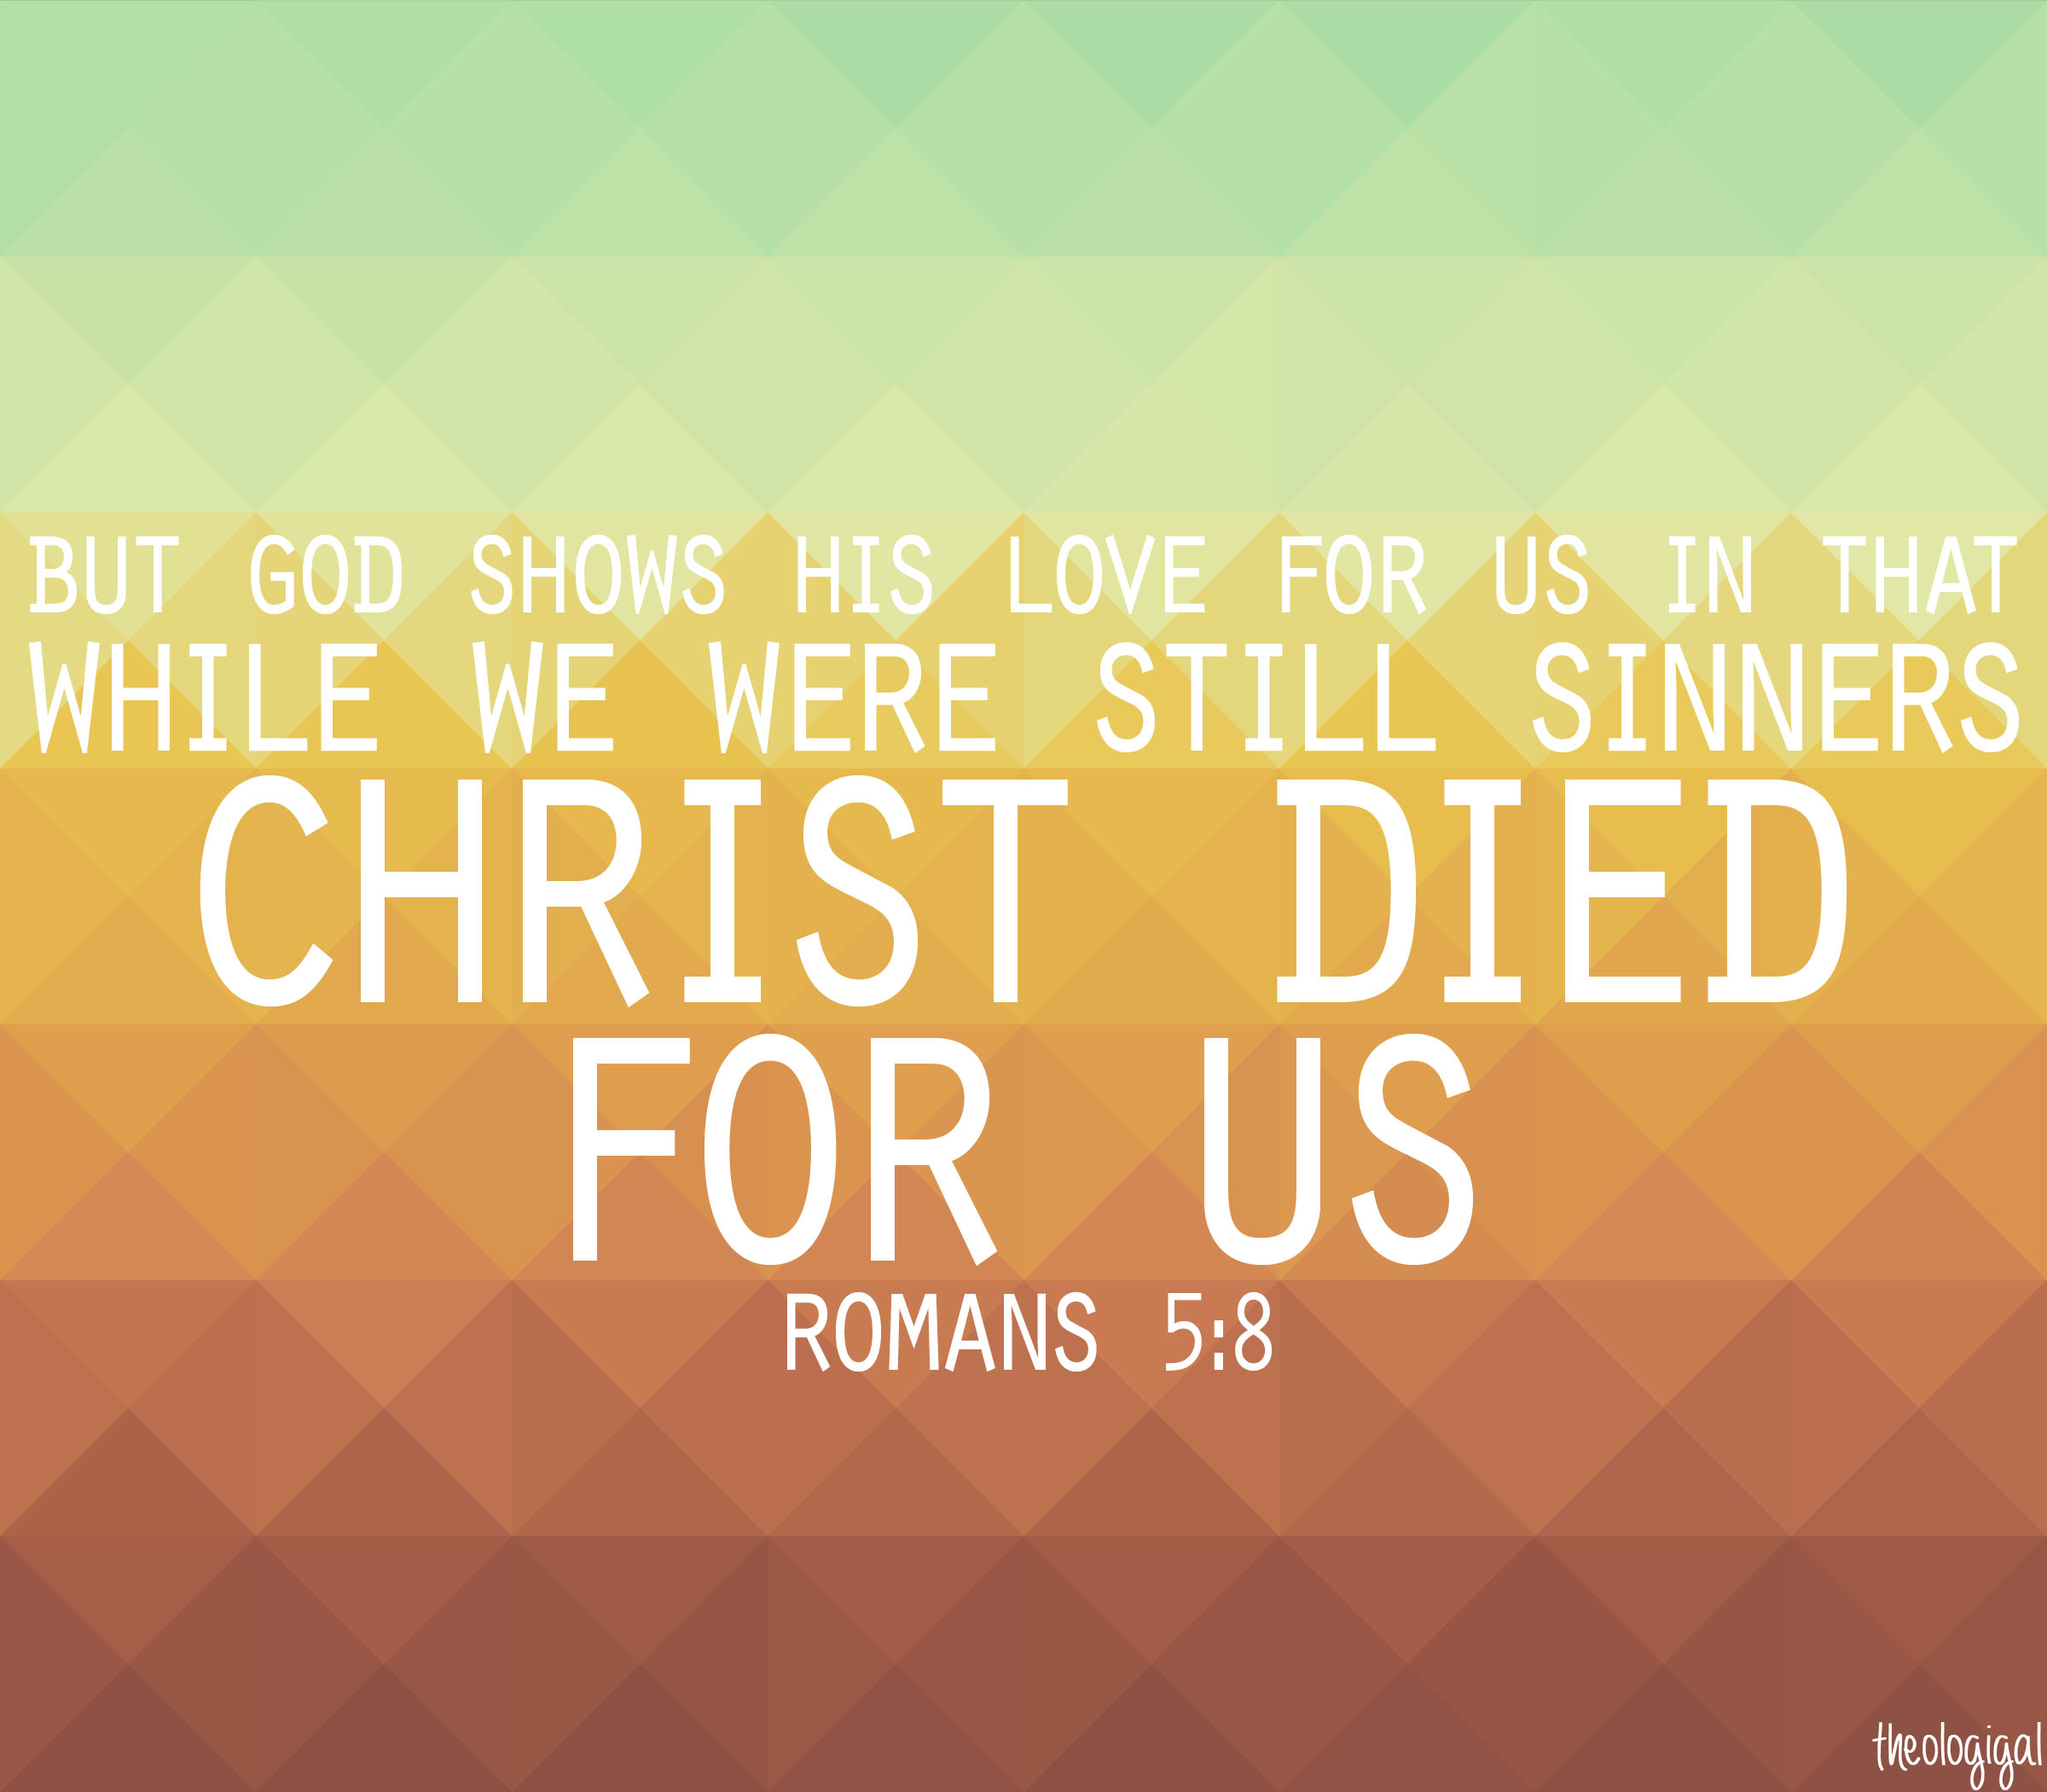 Quotes About Love From The Bible : Christian Bible Verses Tumblr Bible verse - romans 5,8 - but